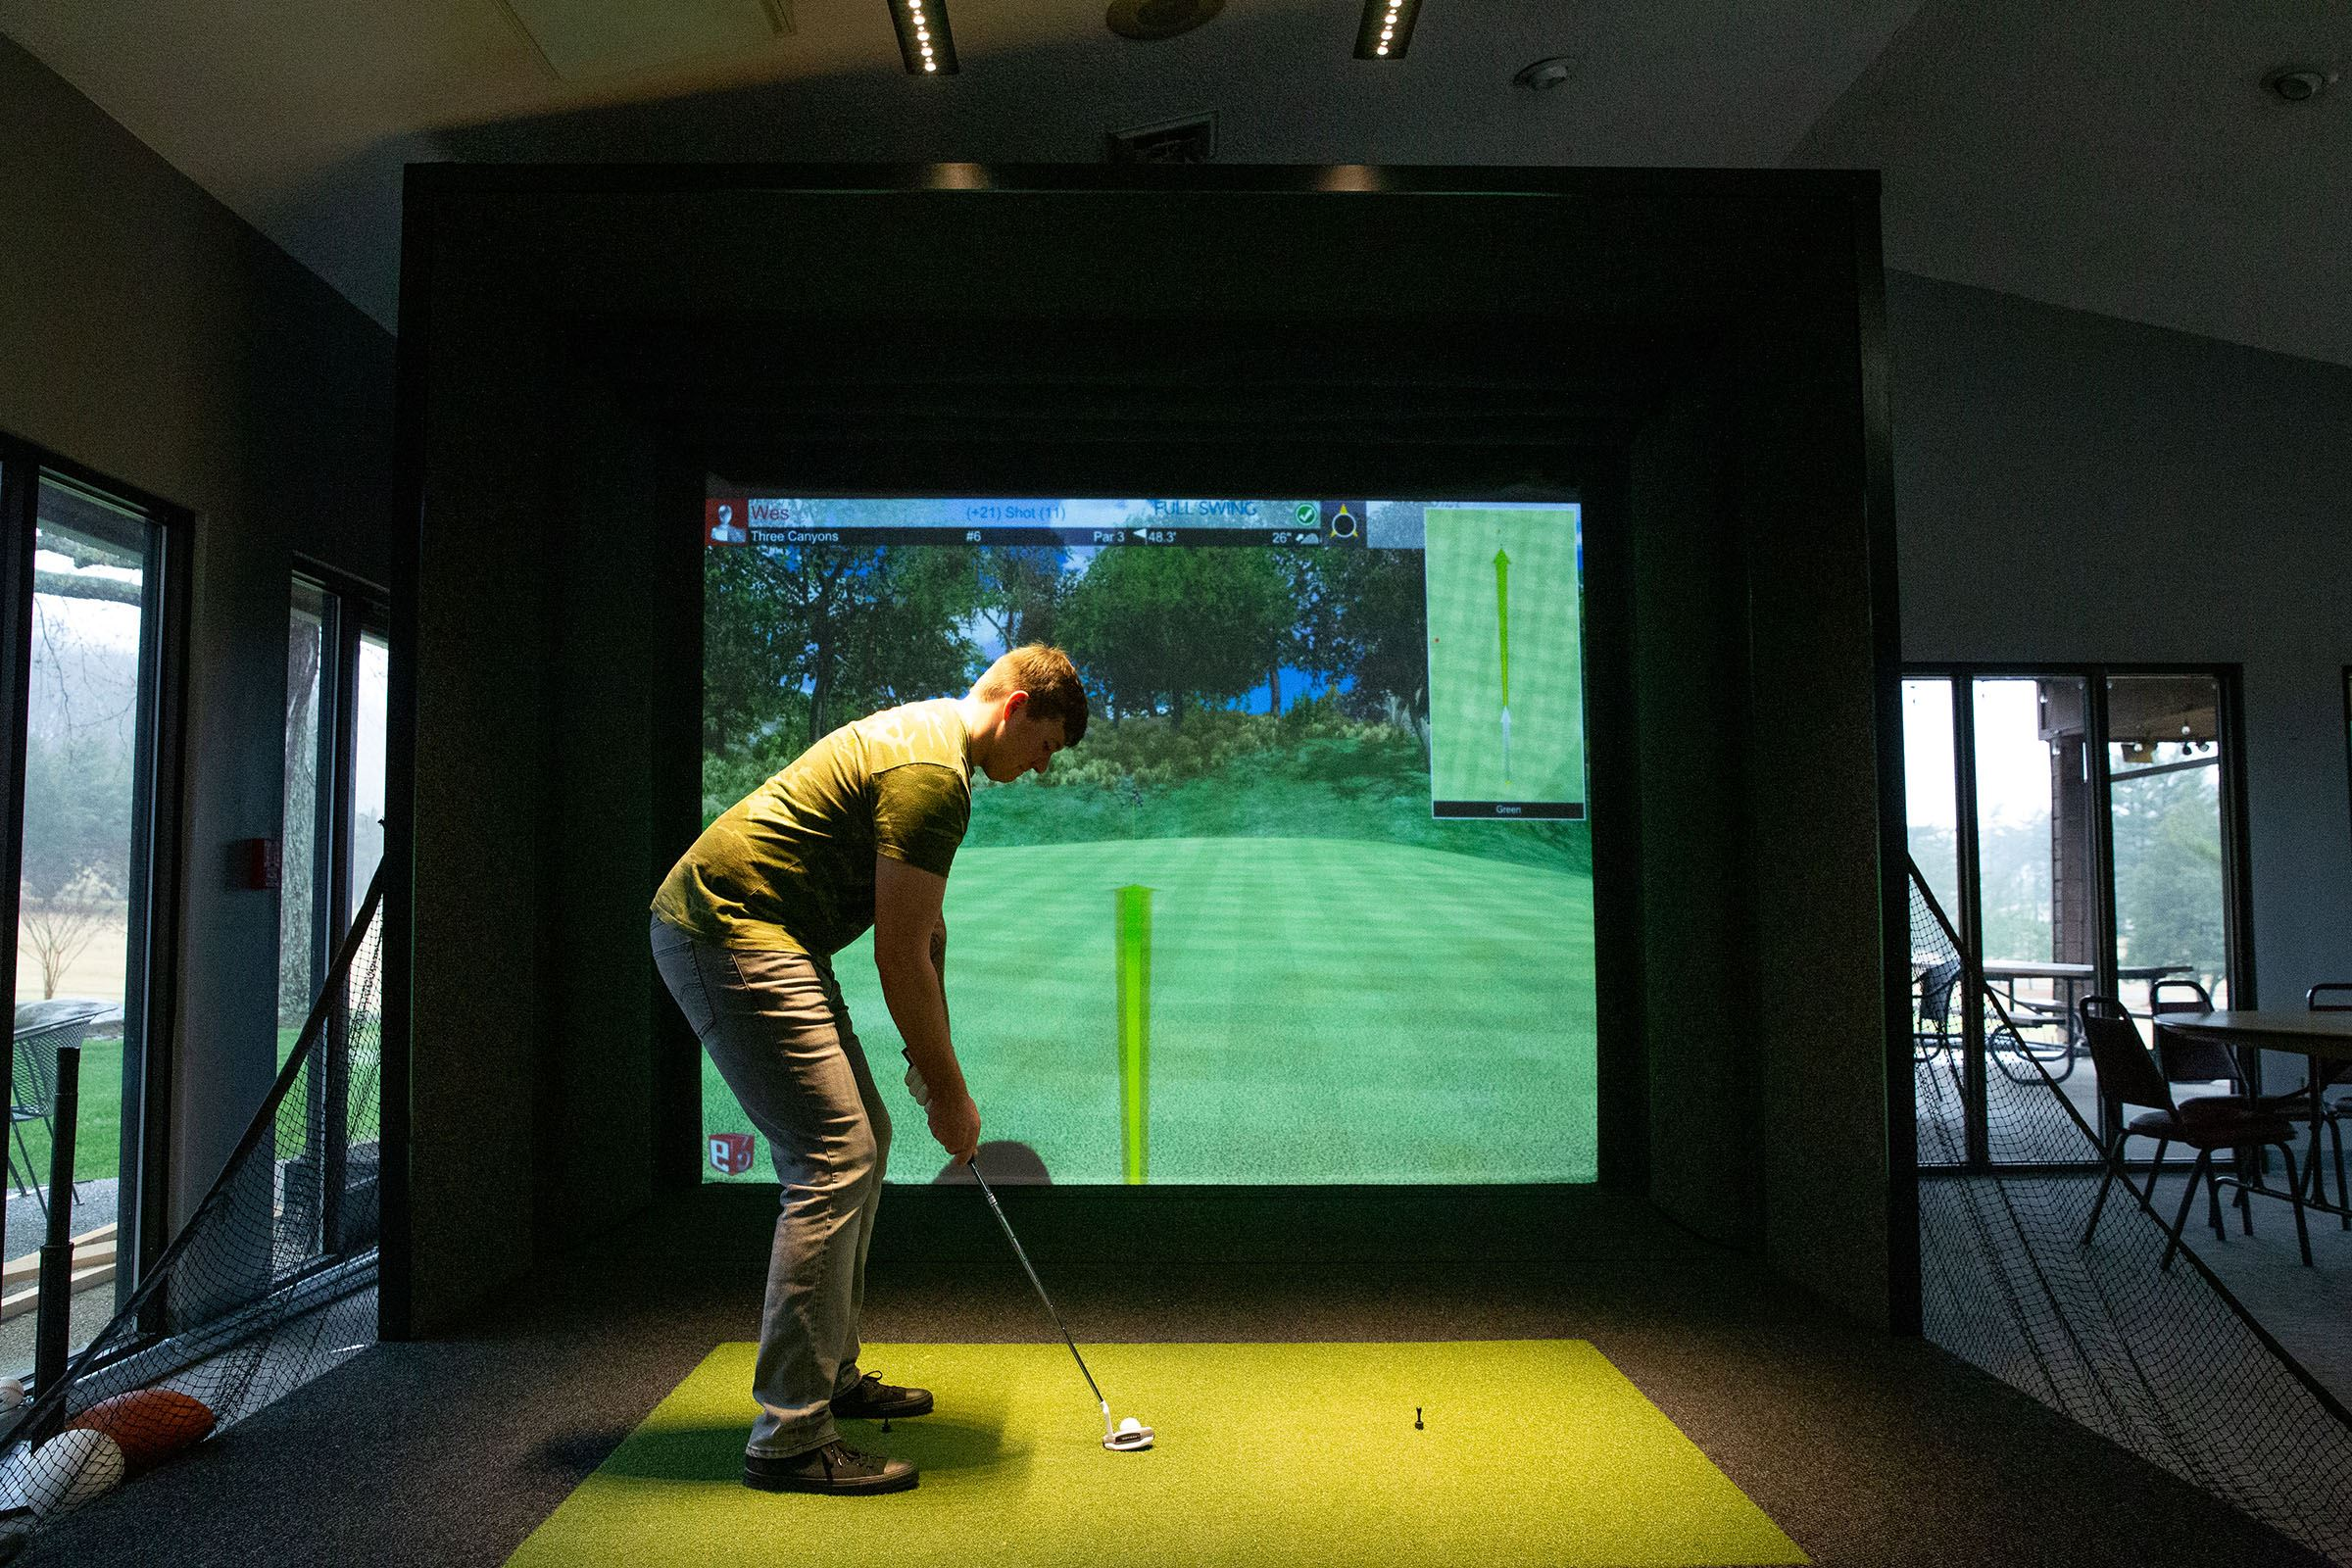 Swan Lake Golf Simulator